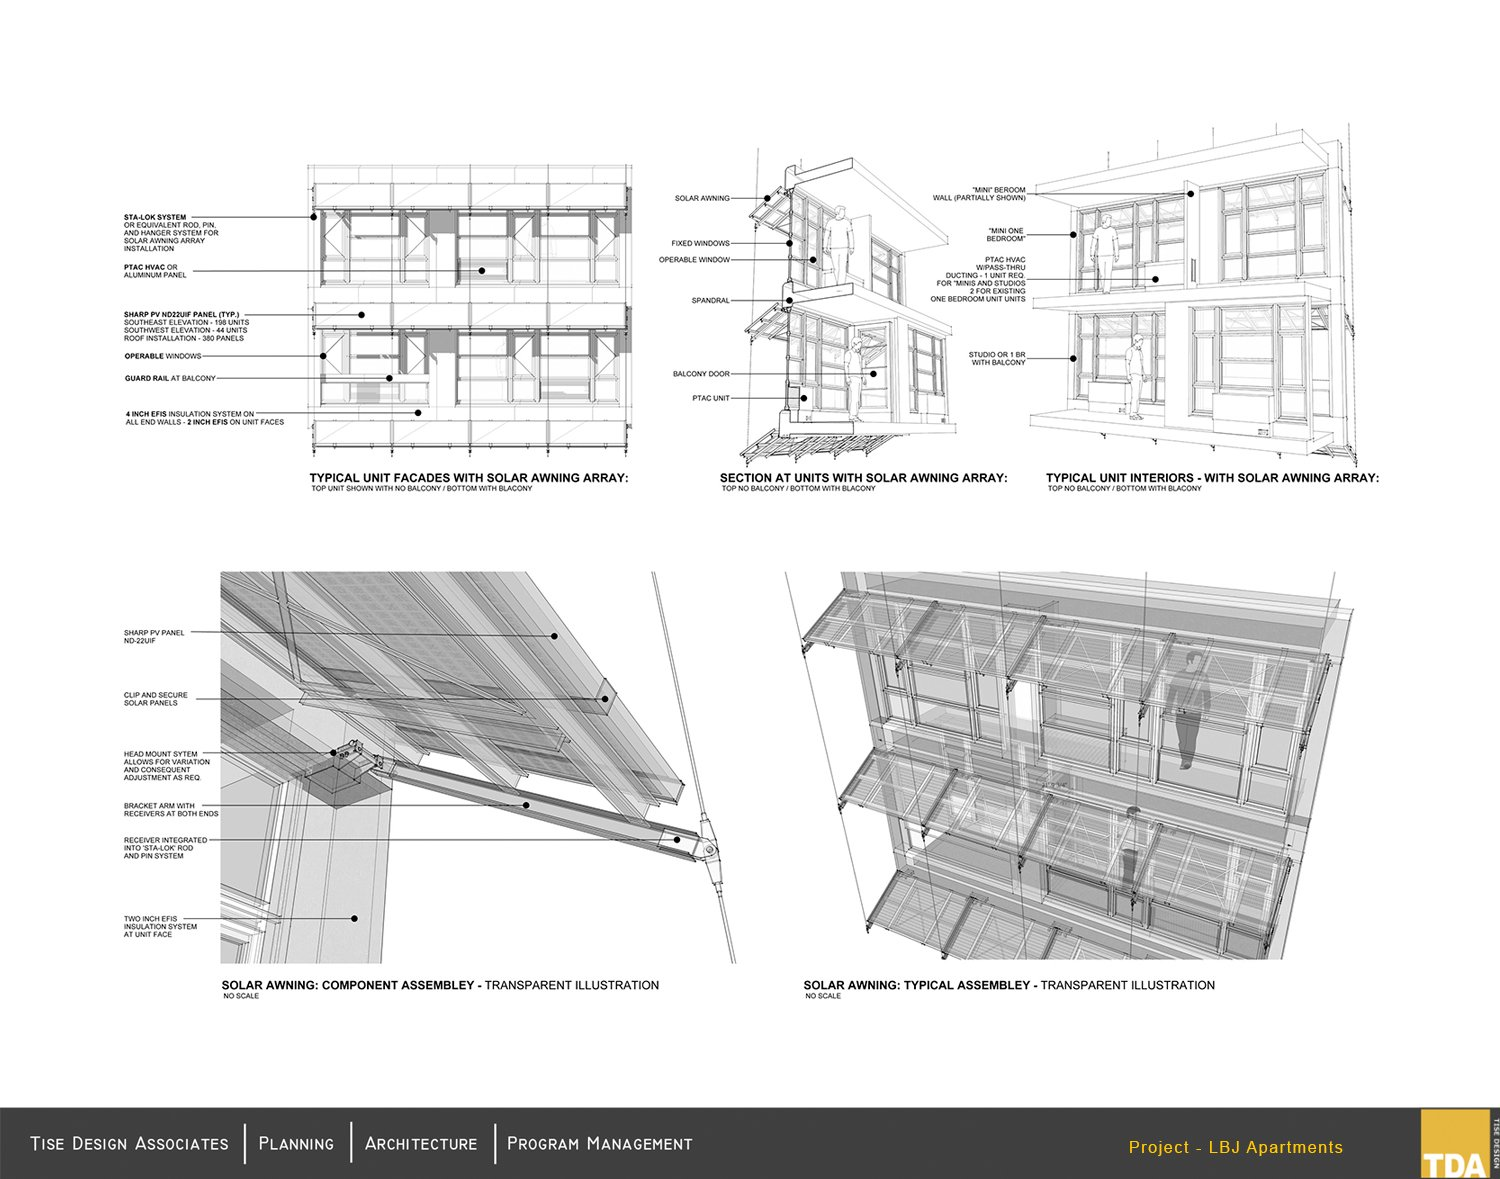 Solar Awning Array and Solar Component Assembly Tise Design Associates}